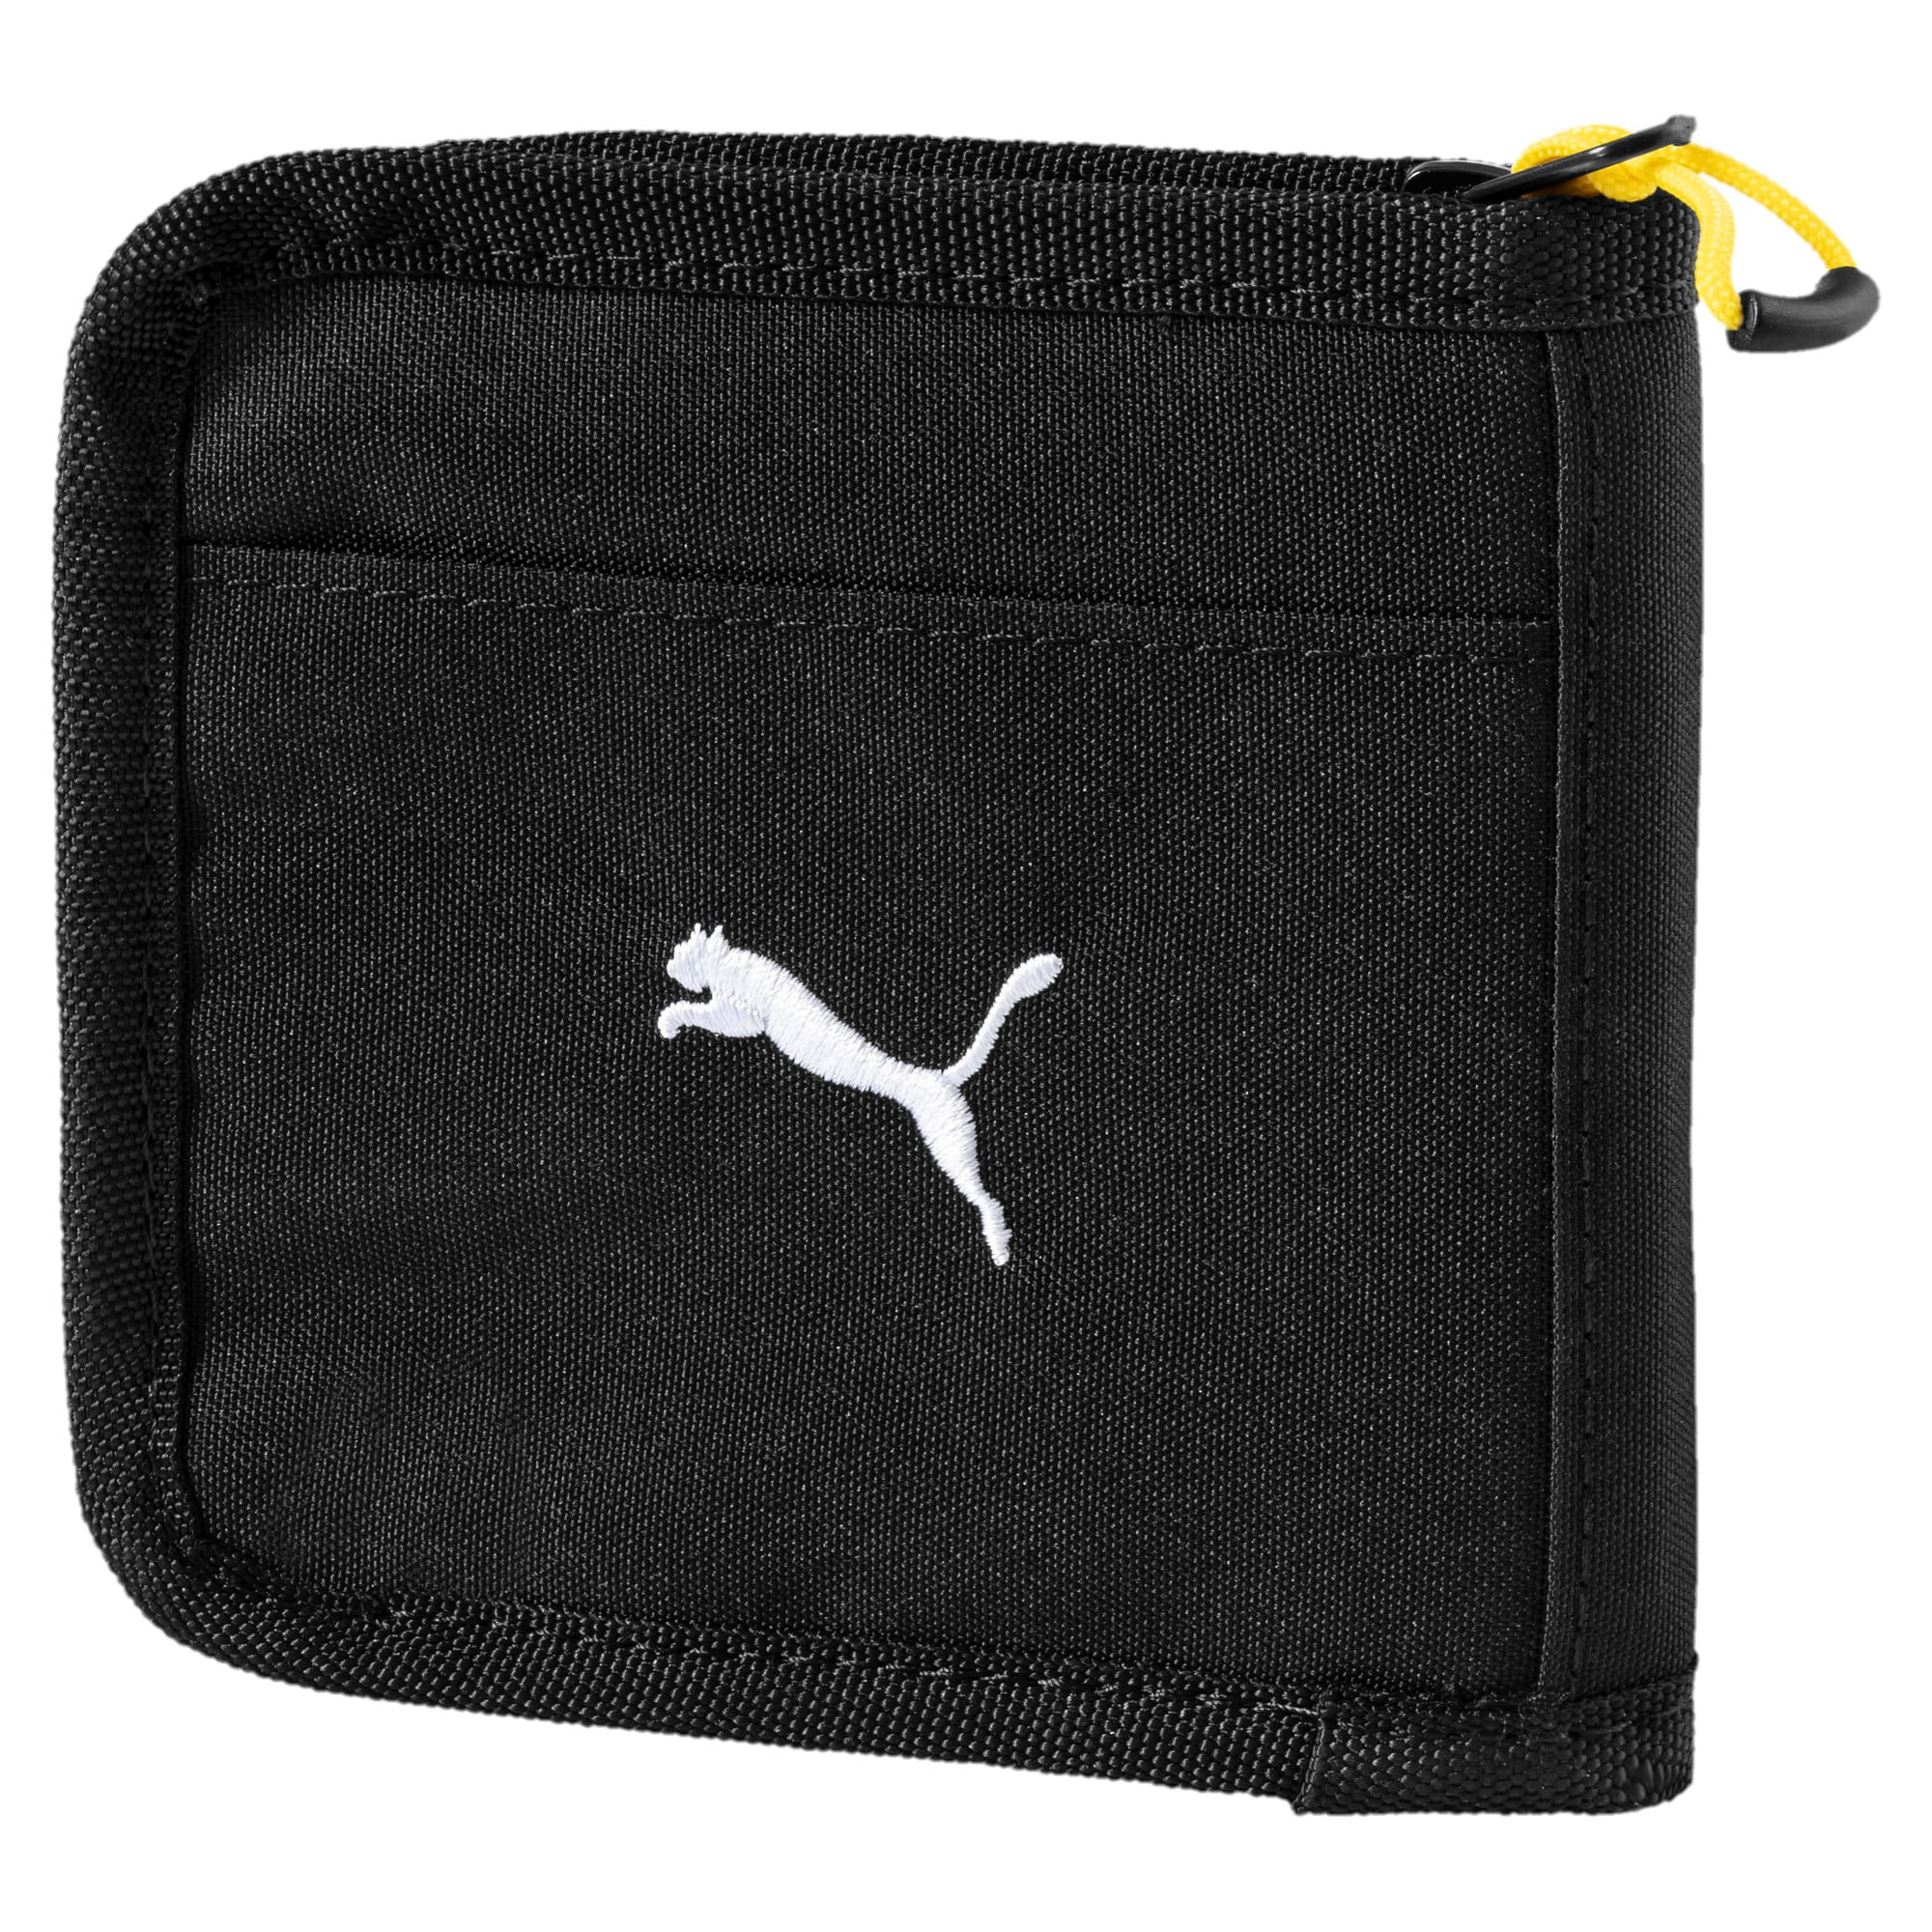 Thumbnail 2 of Scuderia Ferrari Fanwear Wallet, Puma Black, medium